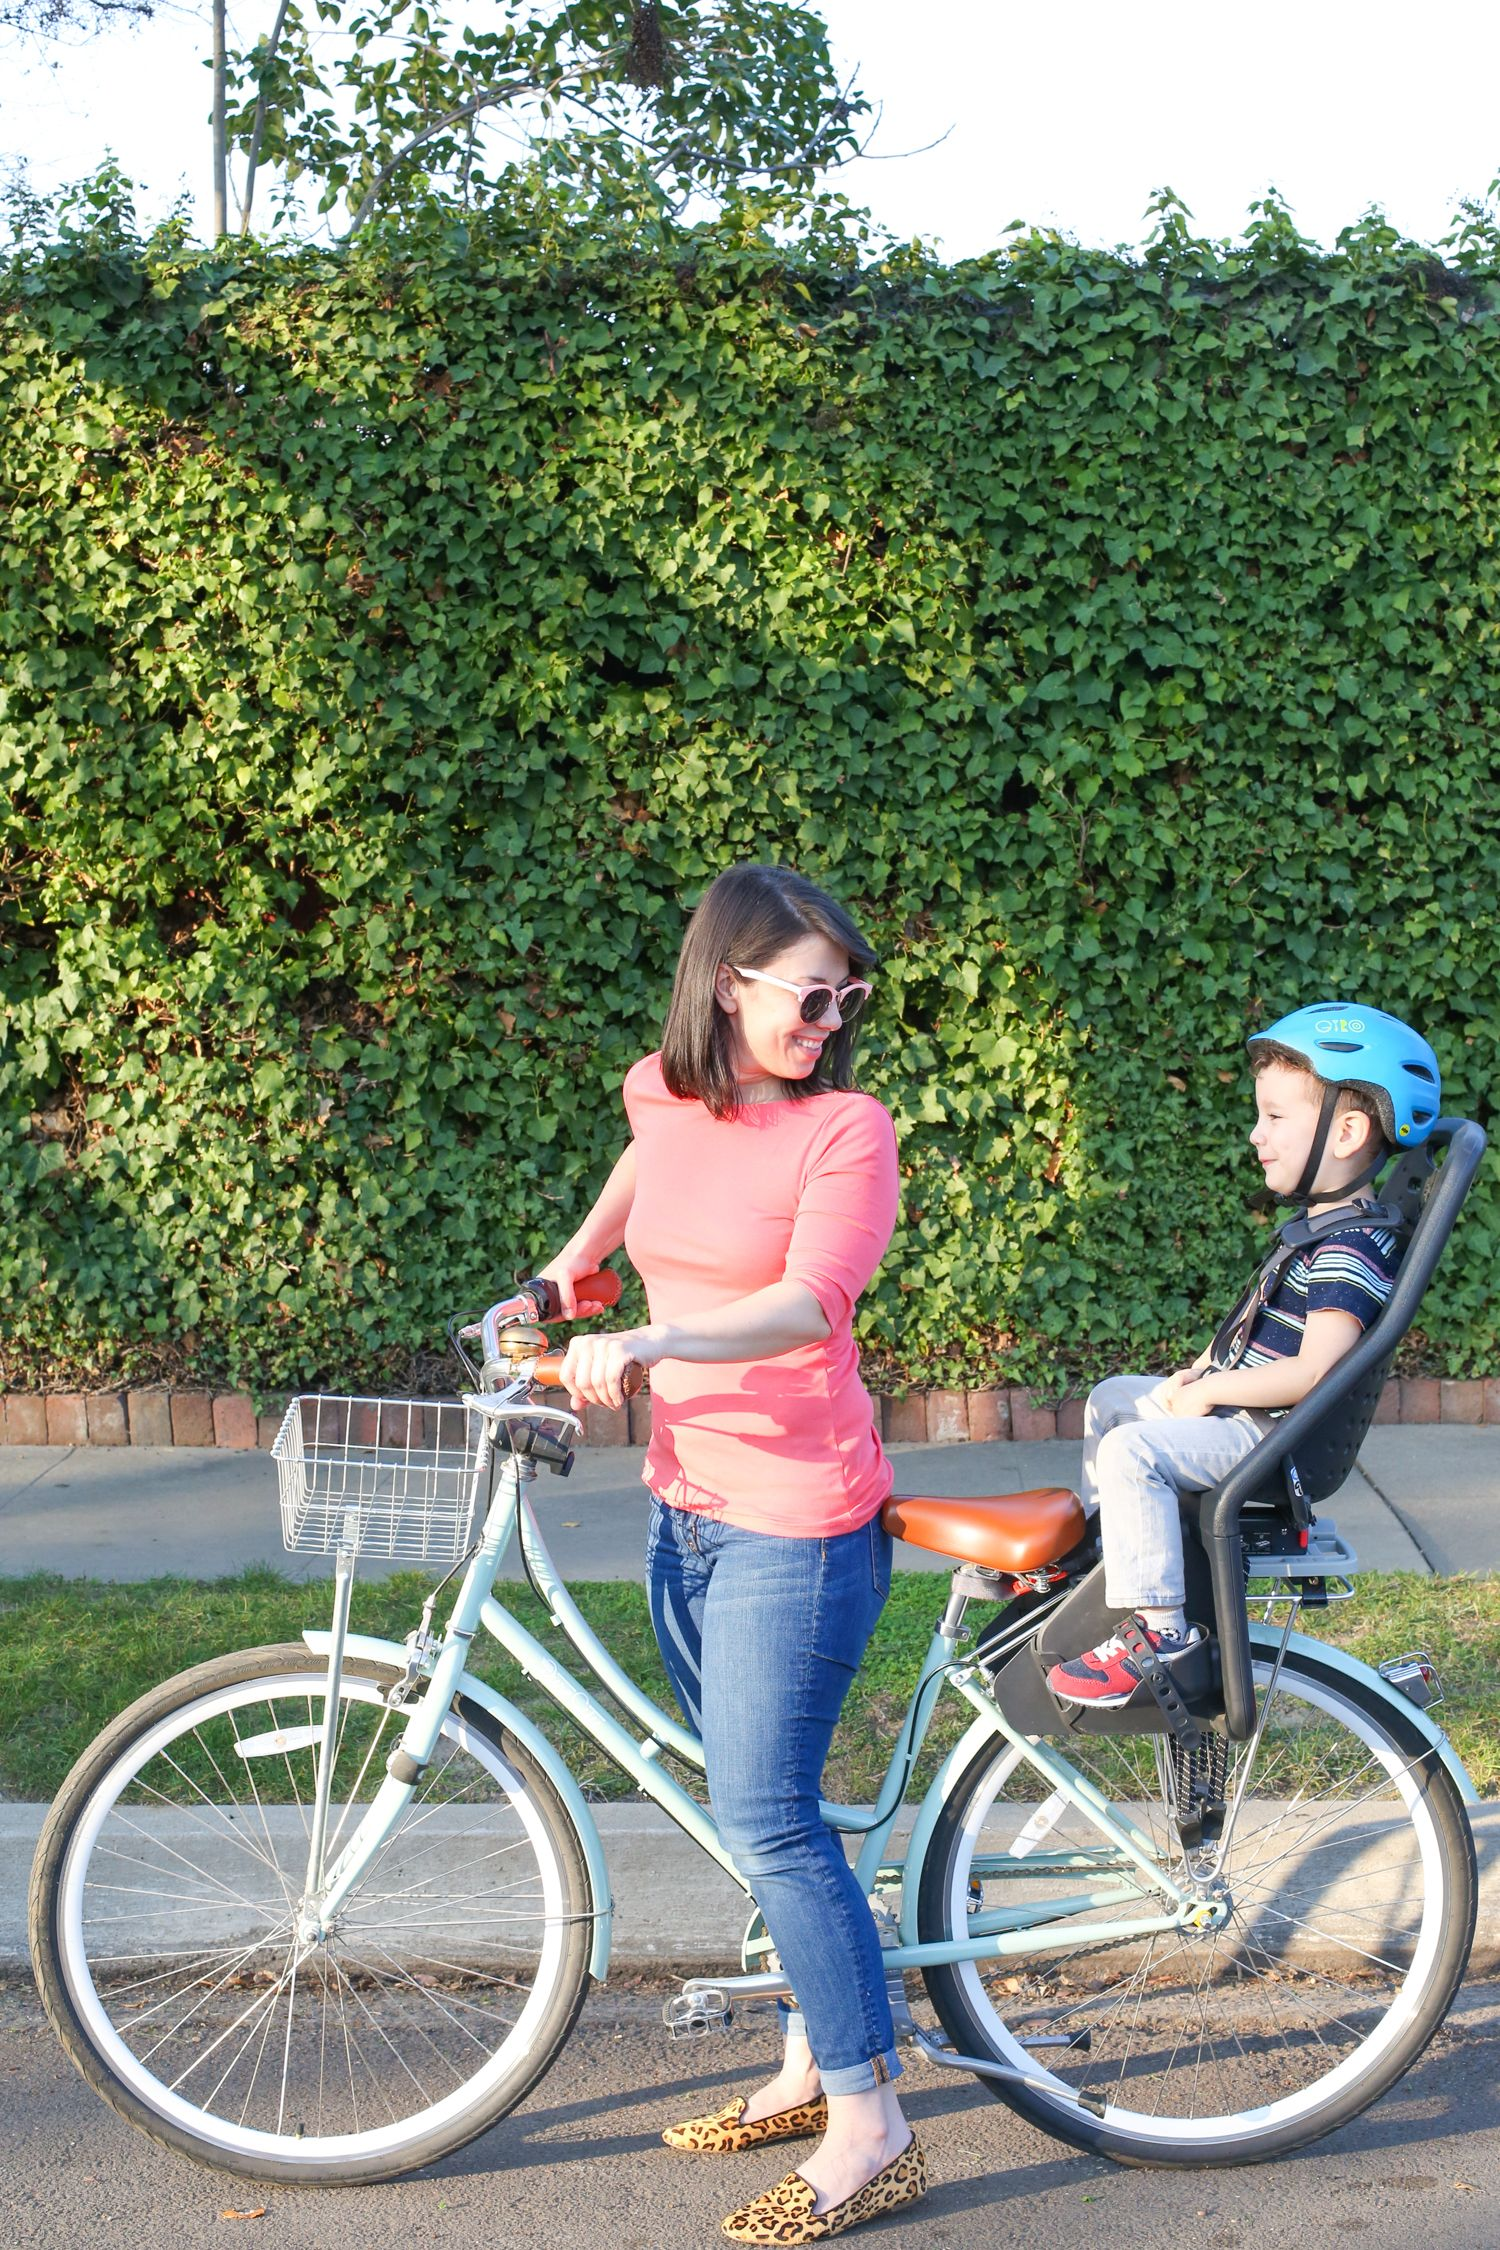 Our Bike Gear The Best For Families Babies And Toddlers Bike